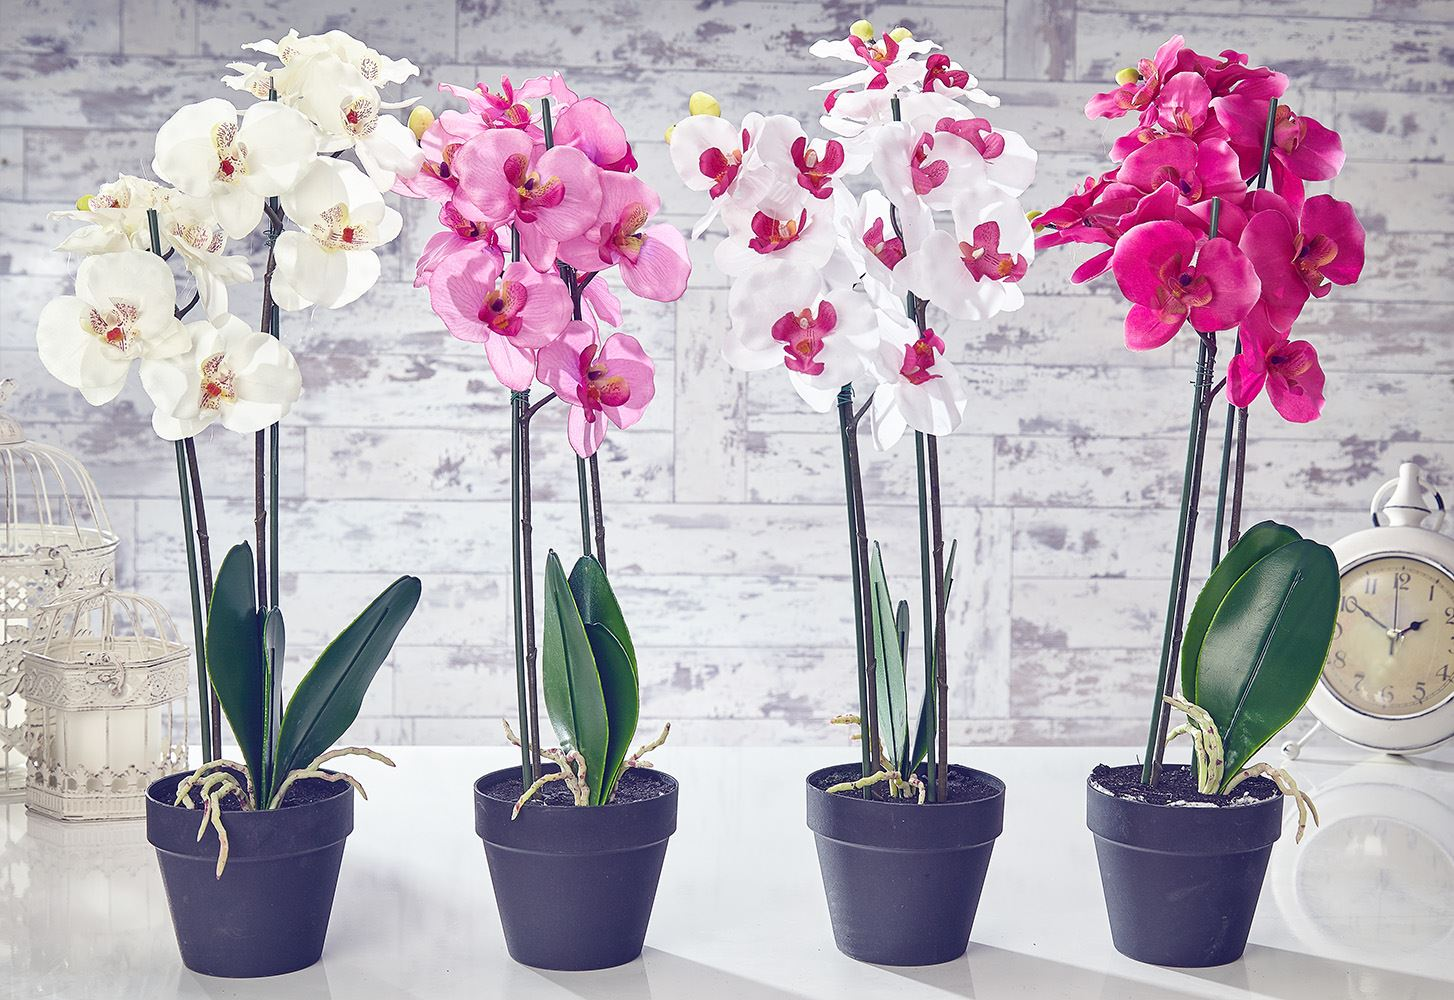 Artificial orchid flowers plants in pot home decor garden for Artificial flowers decoration for home